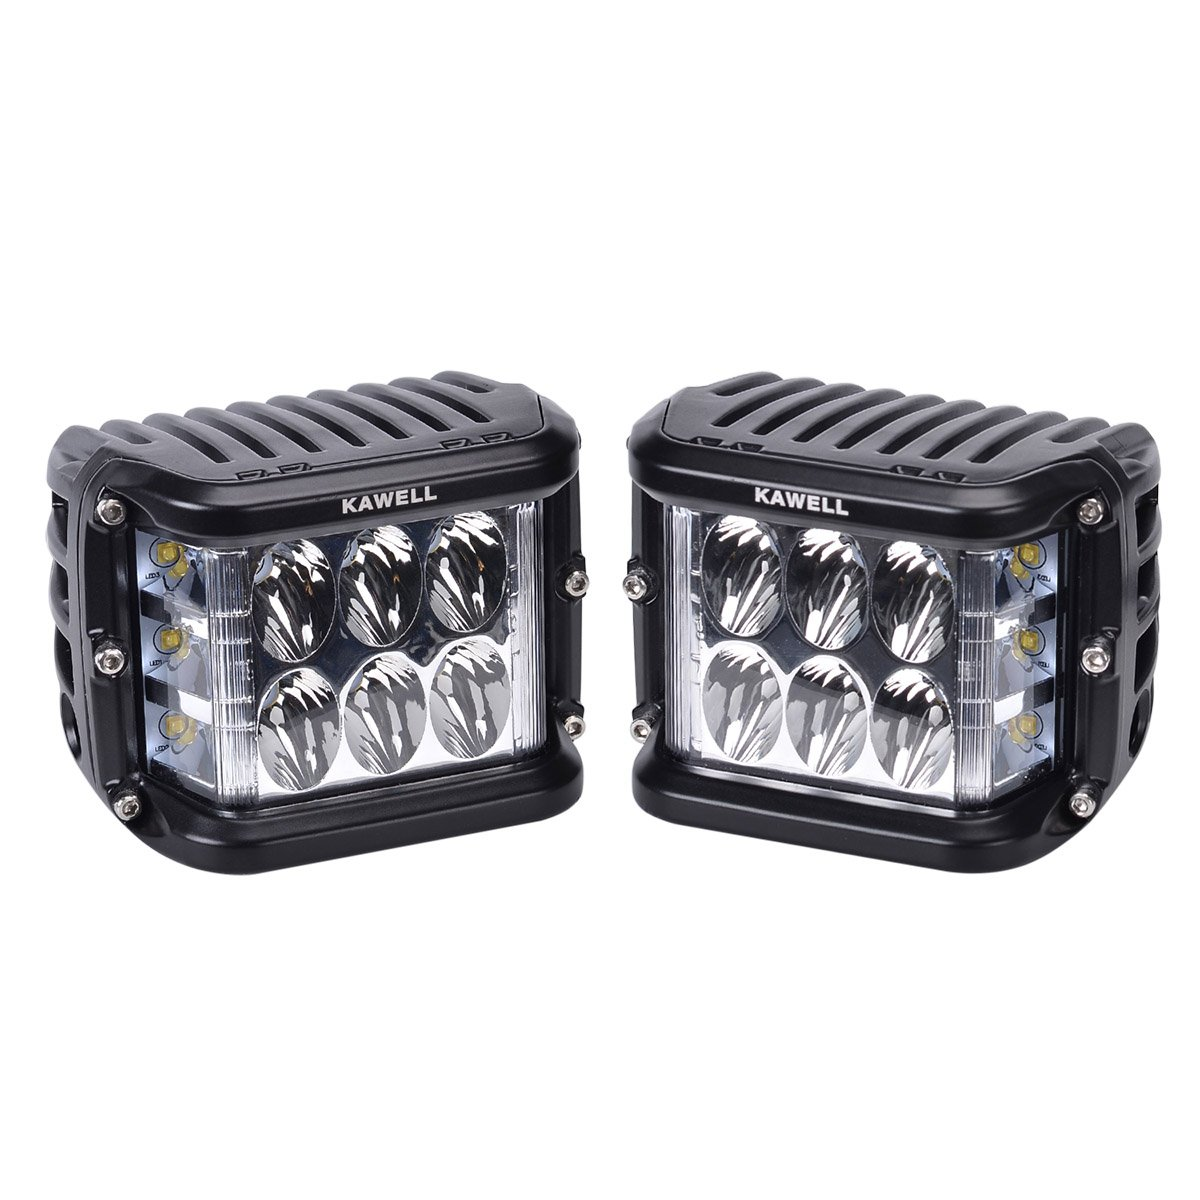 KAWELL Dual Side Shooter Led Cube 45W fü hrte Arbeitslicht Off Road Led Nebel Arbeitslampe Bright fü r SUV Truck Car und mehr